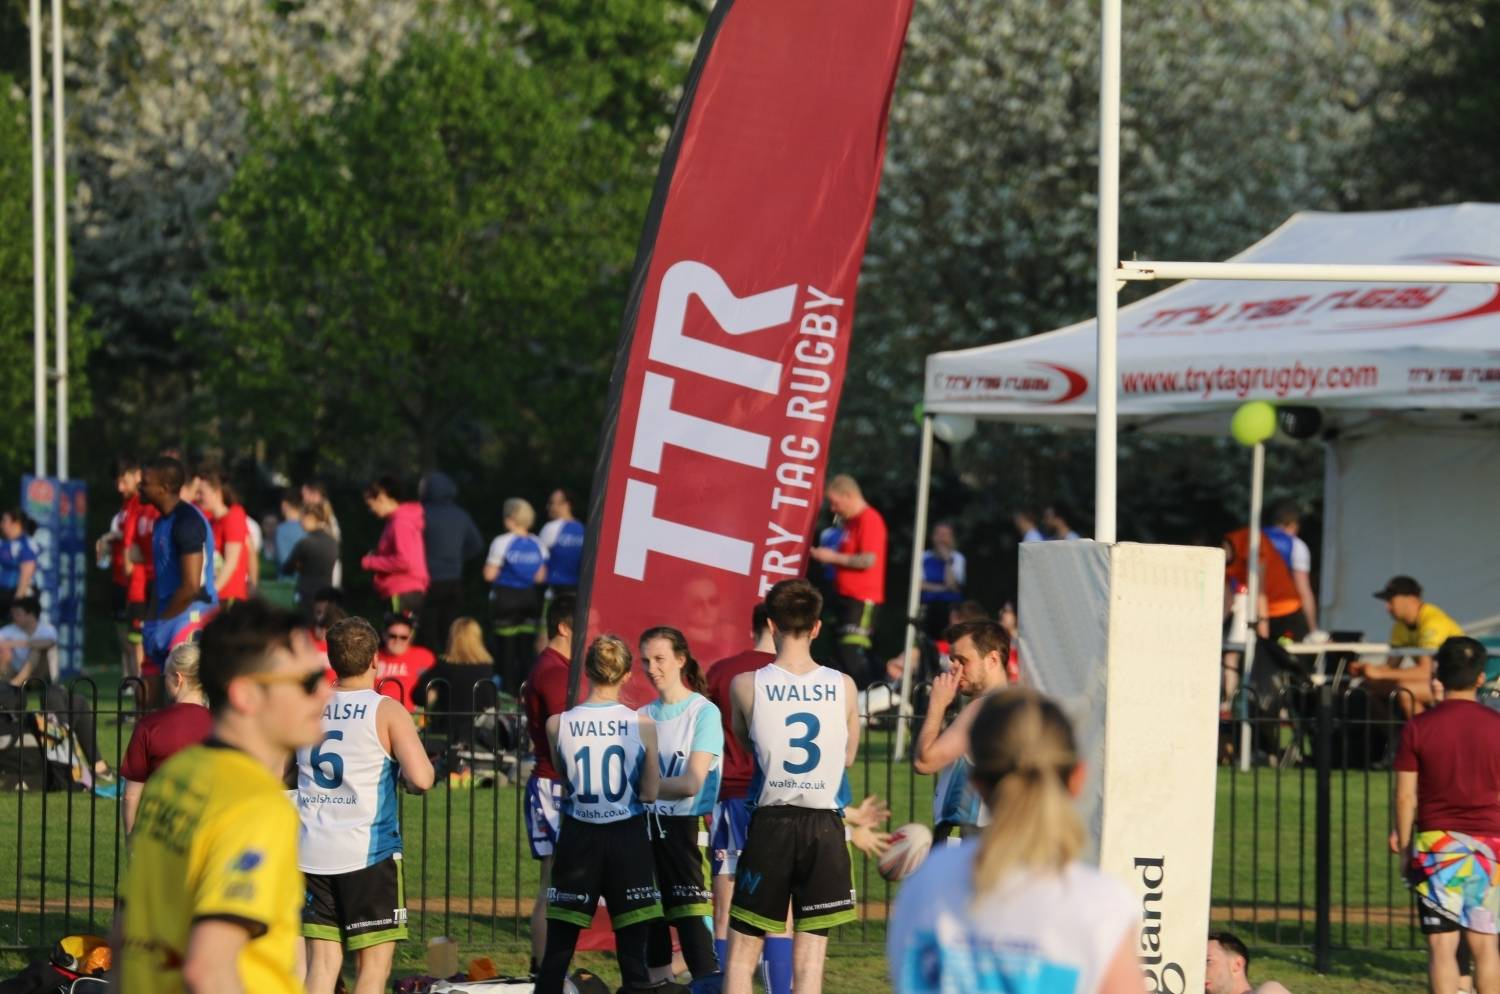 Try Tag Rugby sees rise in player numbers